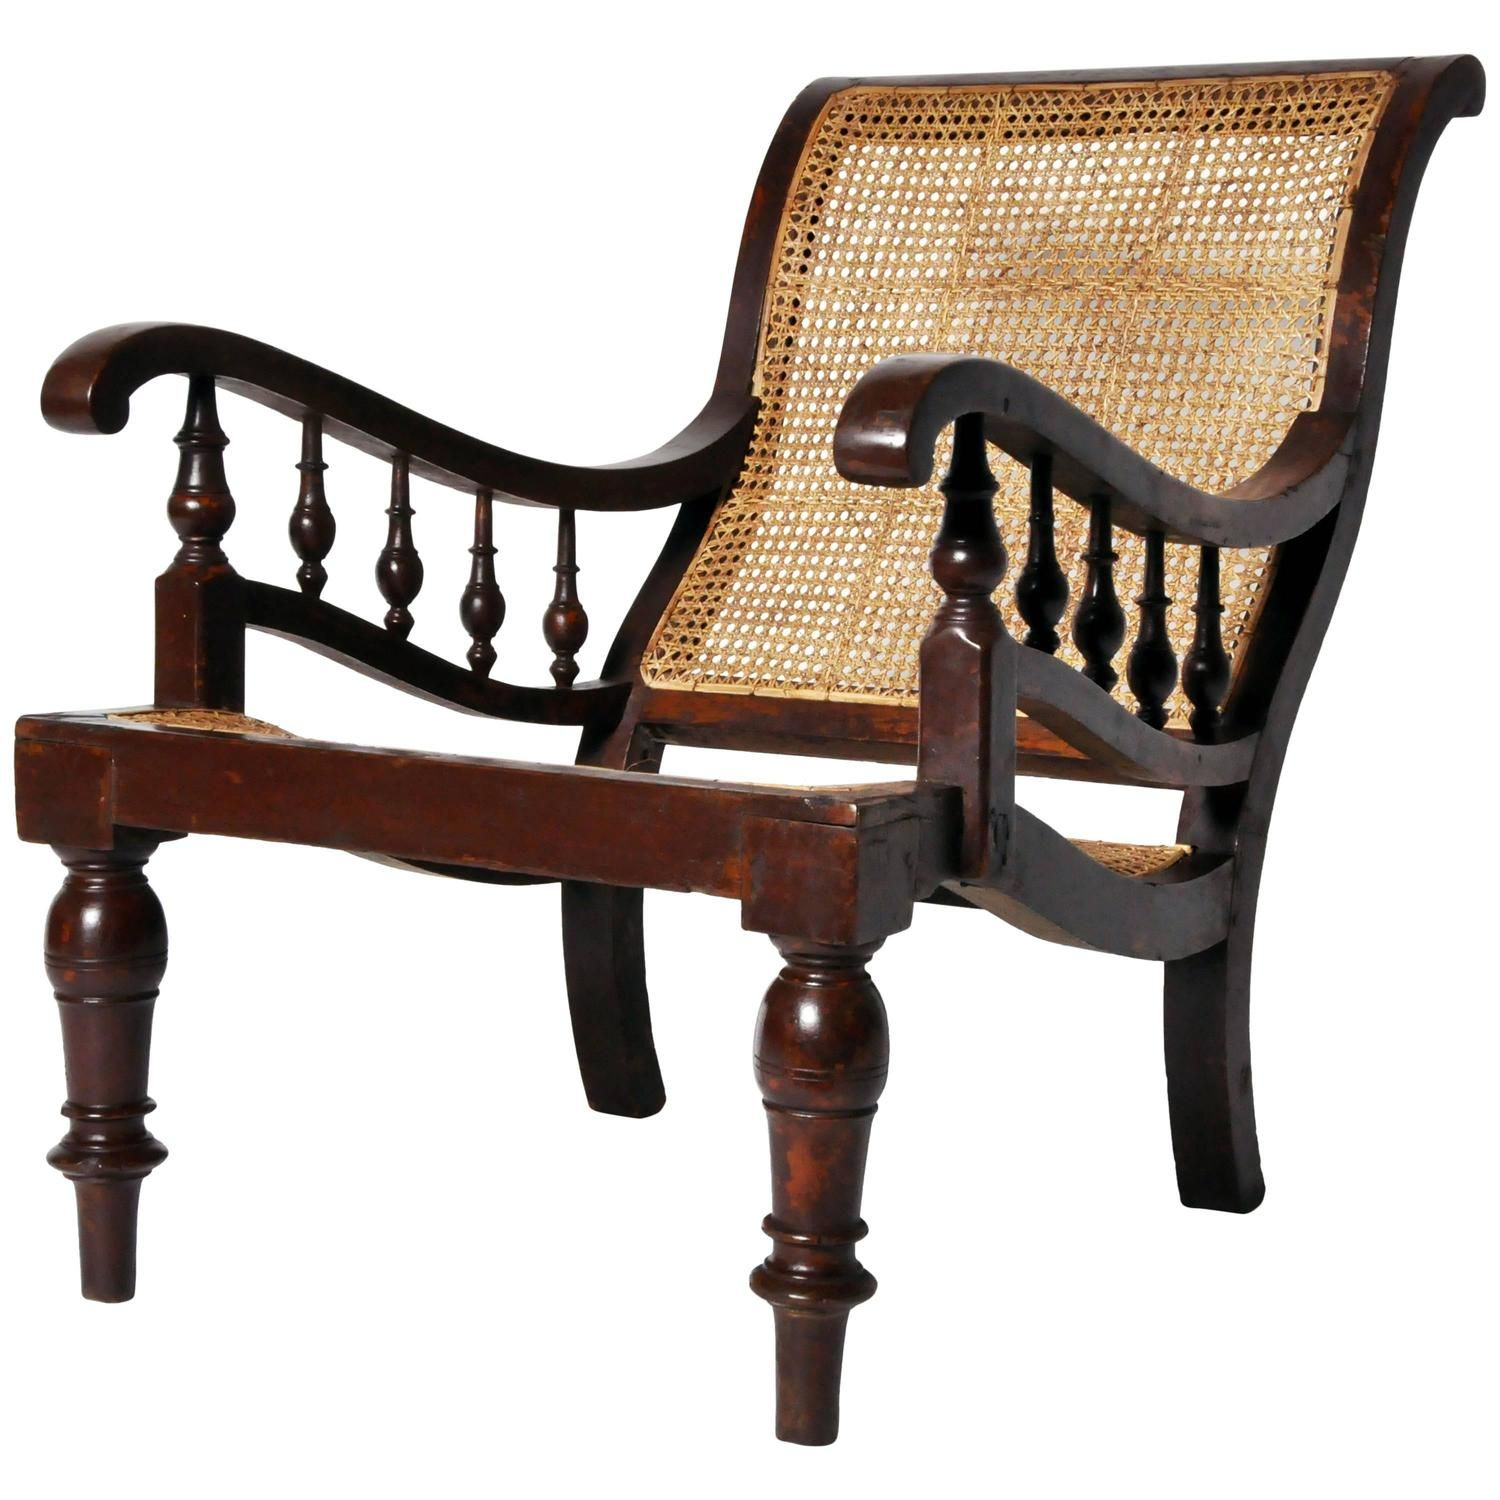 Colonial Chair British Colonial Planters Chair Planters Furniture And